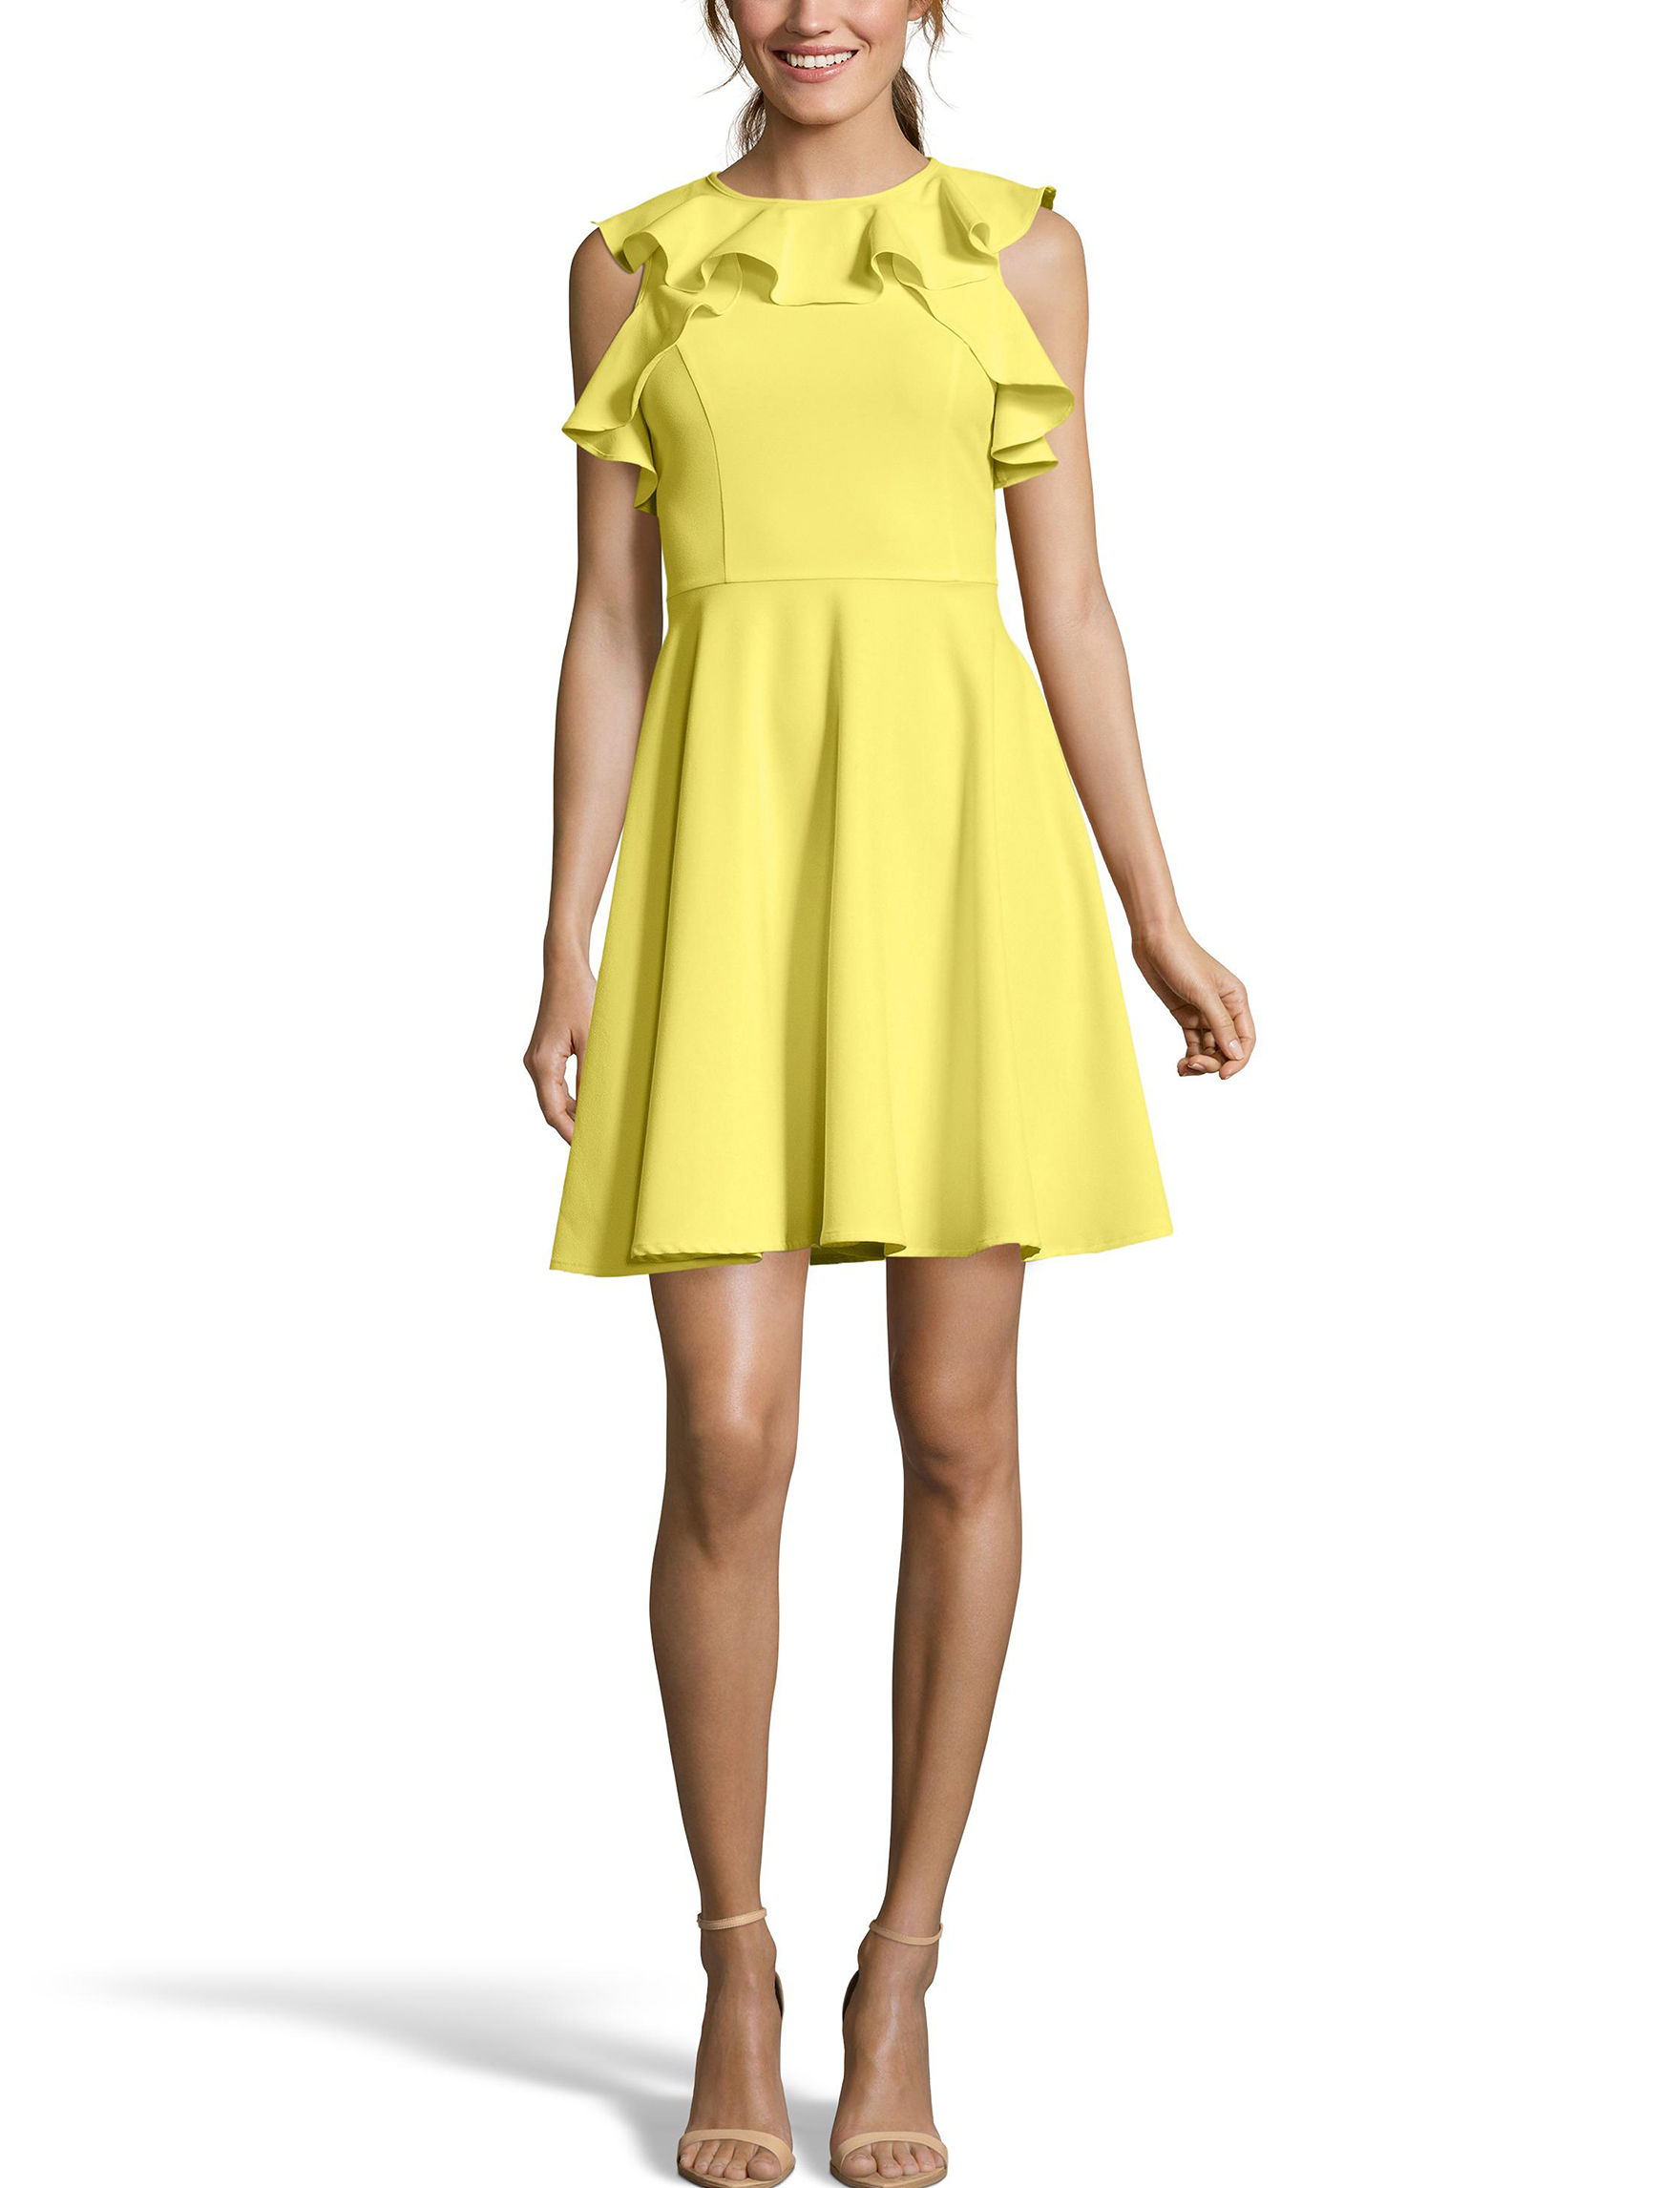 Nicole Miller Citrine Everyday & Casual A-line Dresses